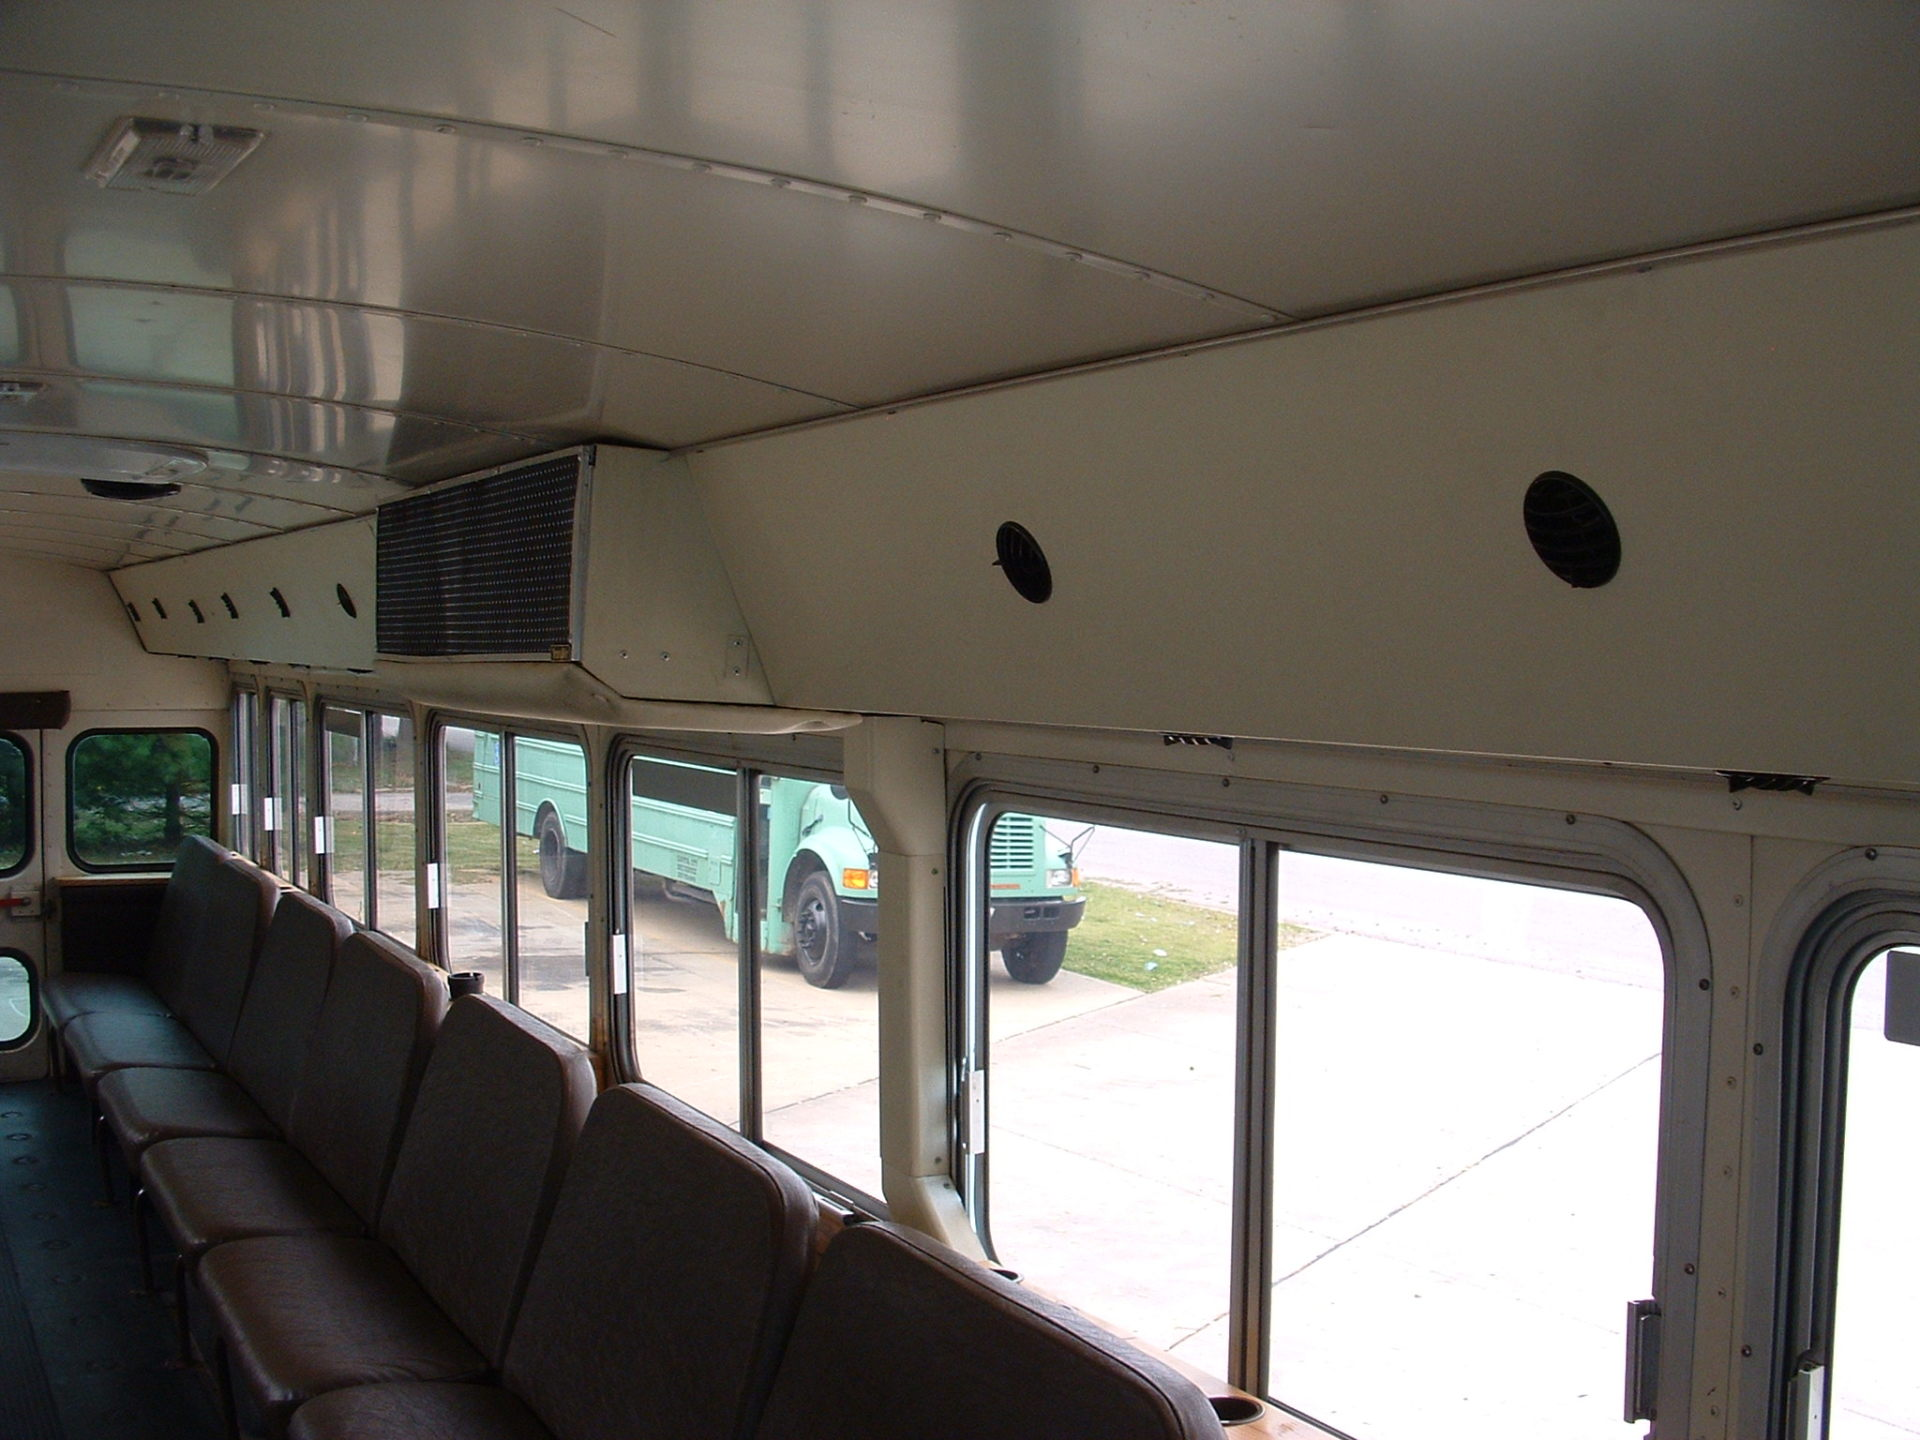 DUCTED A/C KEEPS ENTIRE BUS COOL